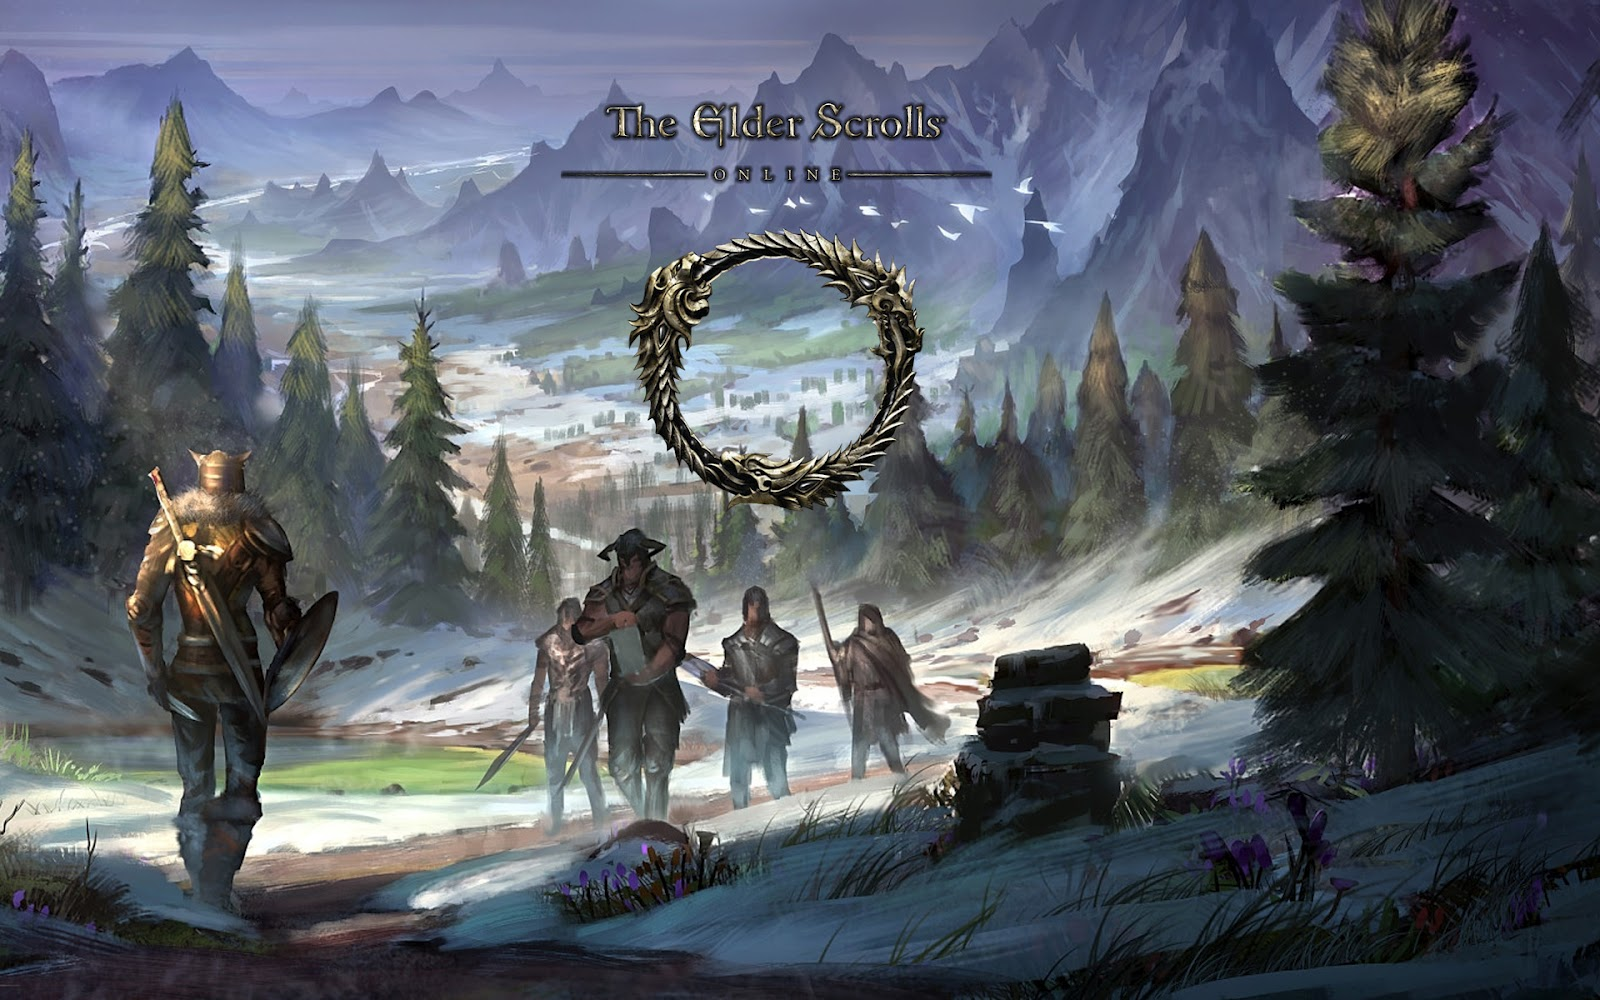 the_elder_scrolls_online_wallpaper_2-wide